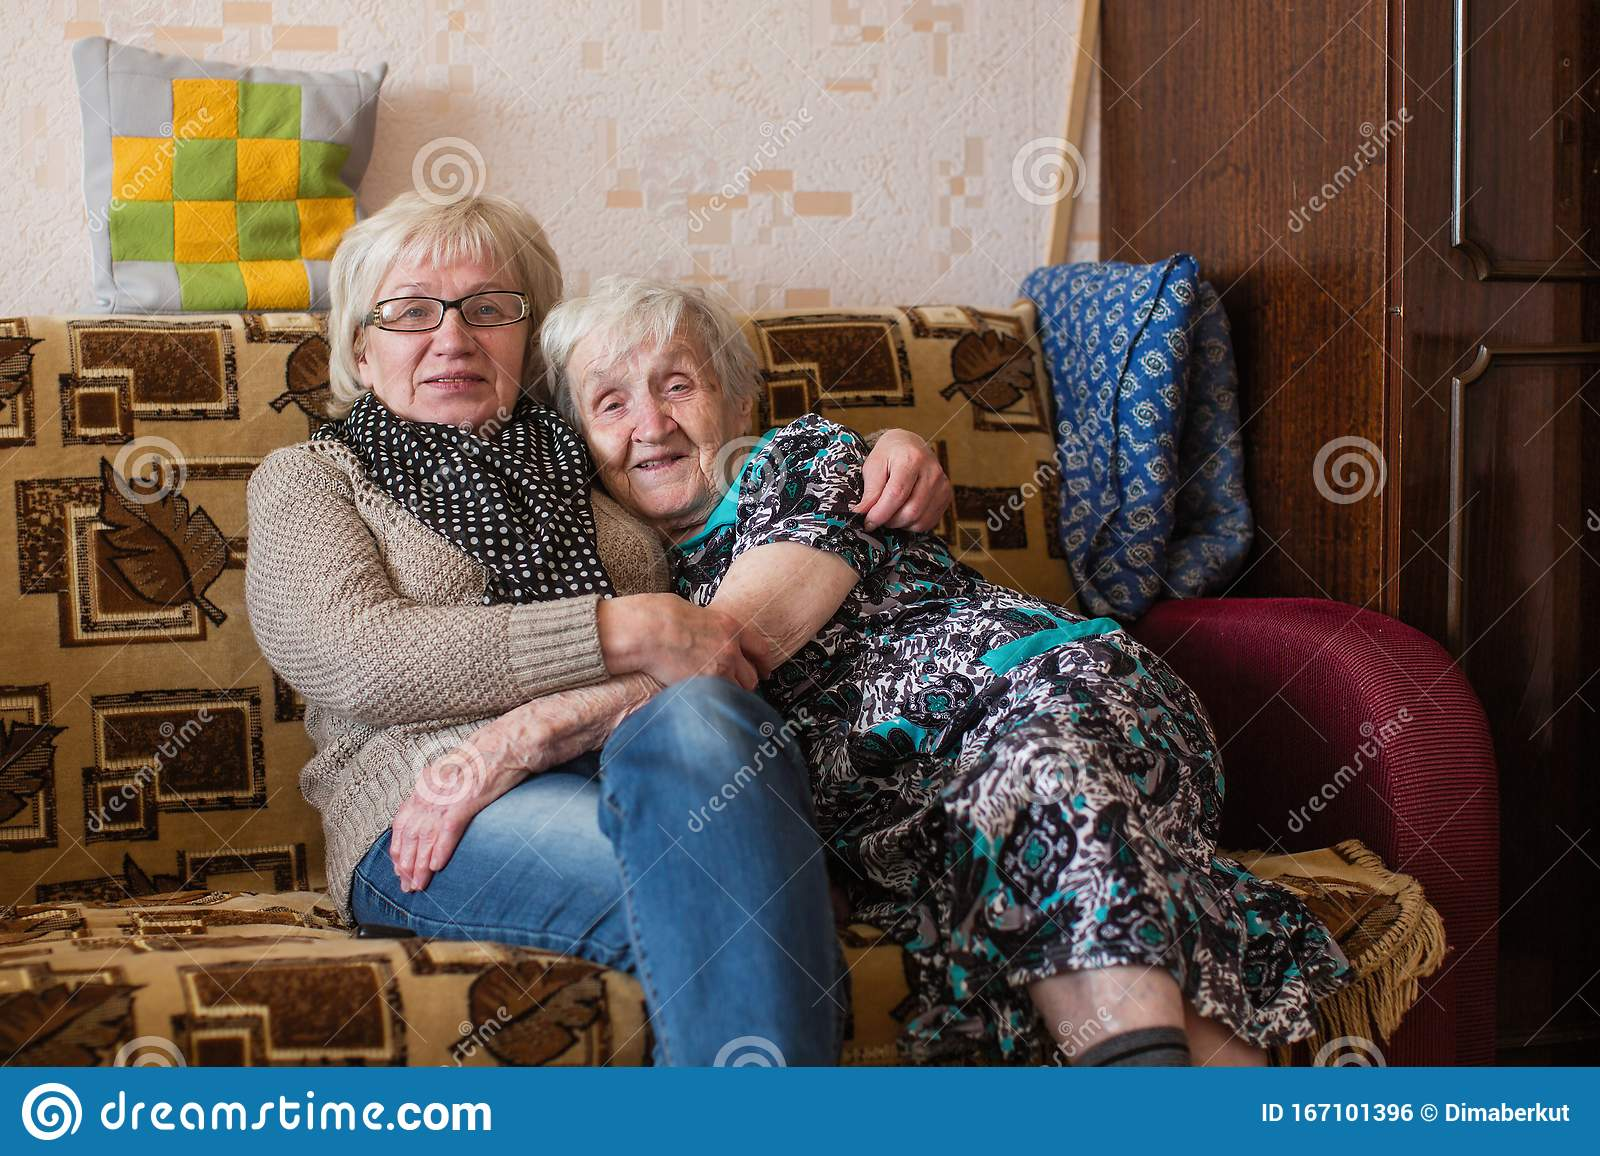 Old Woman With Her Adult Daughter Cuddling On The Couch Family